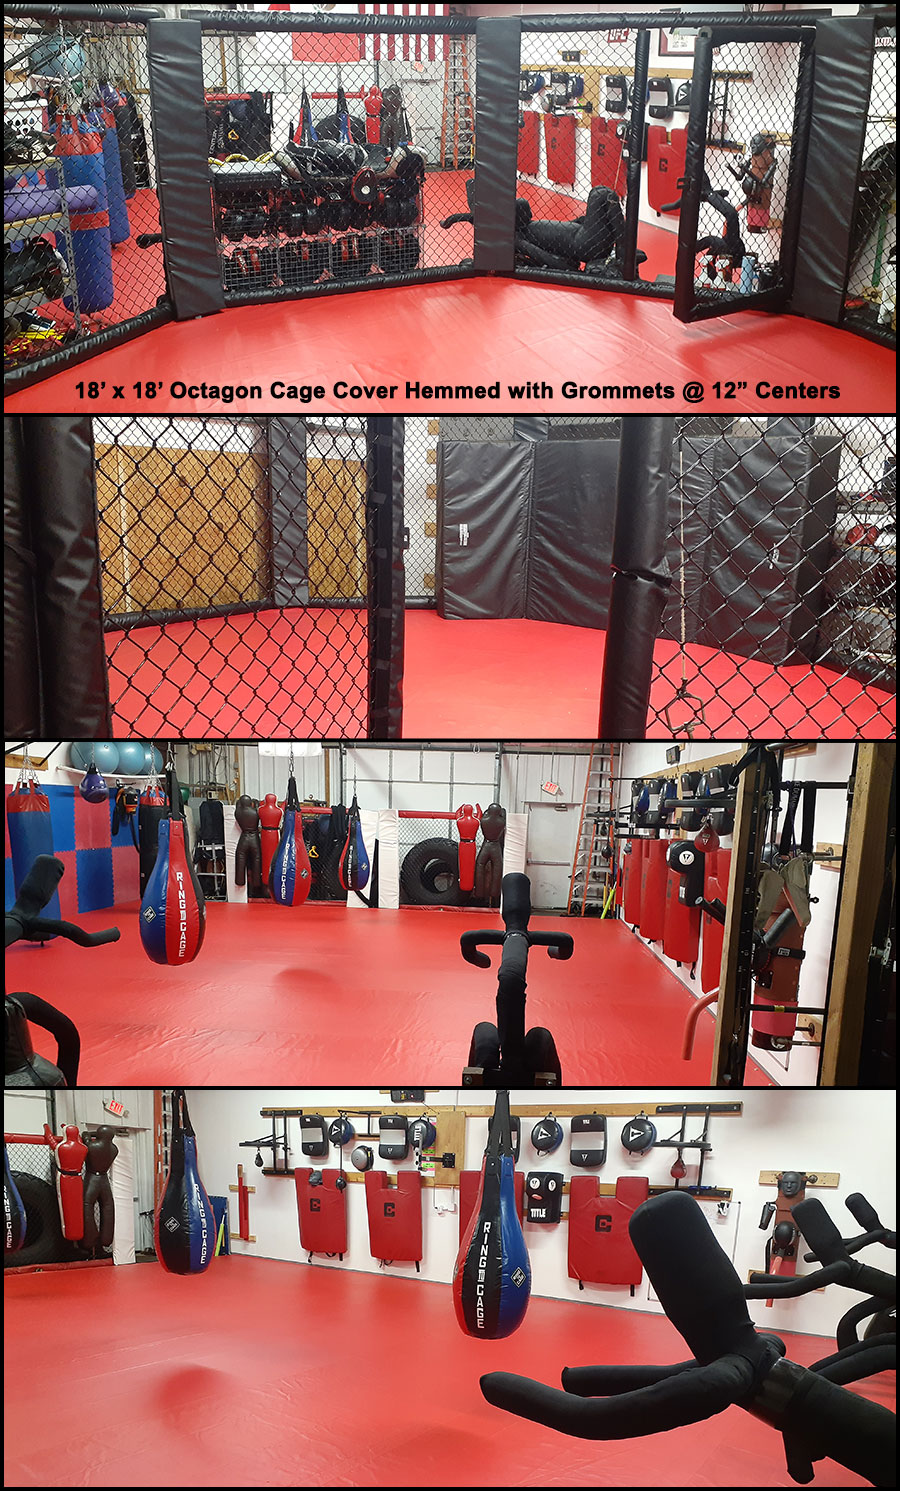 Octagon Cage Cover